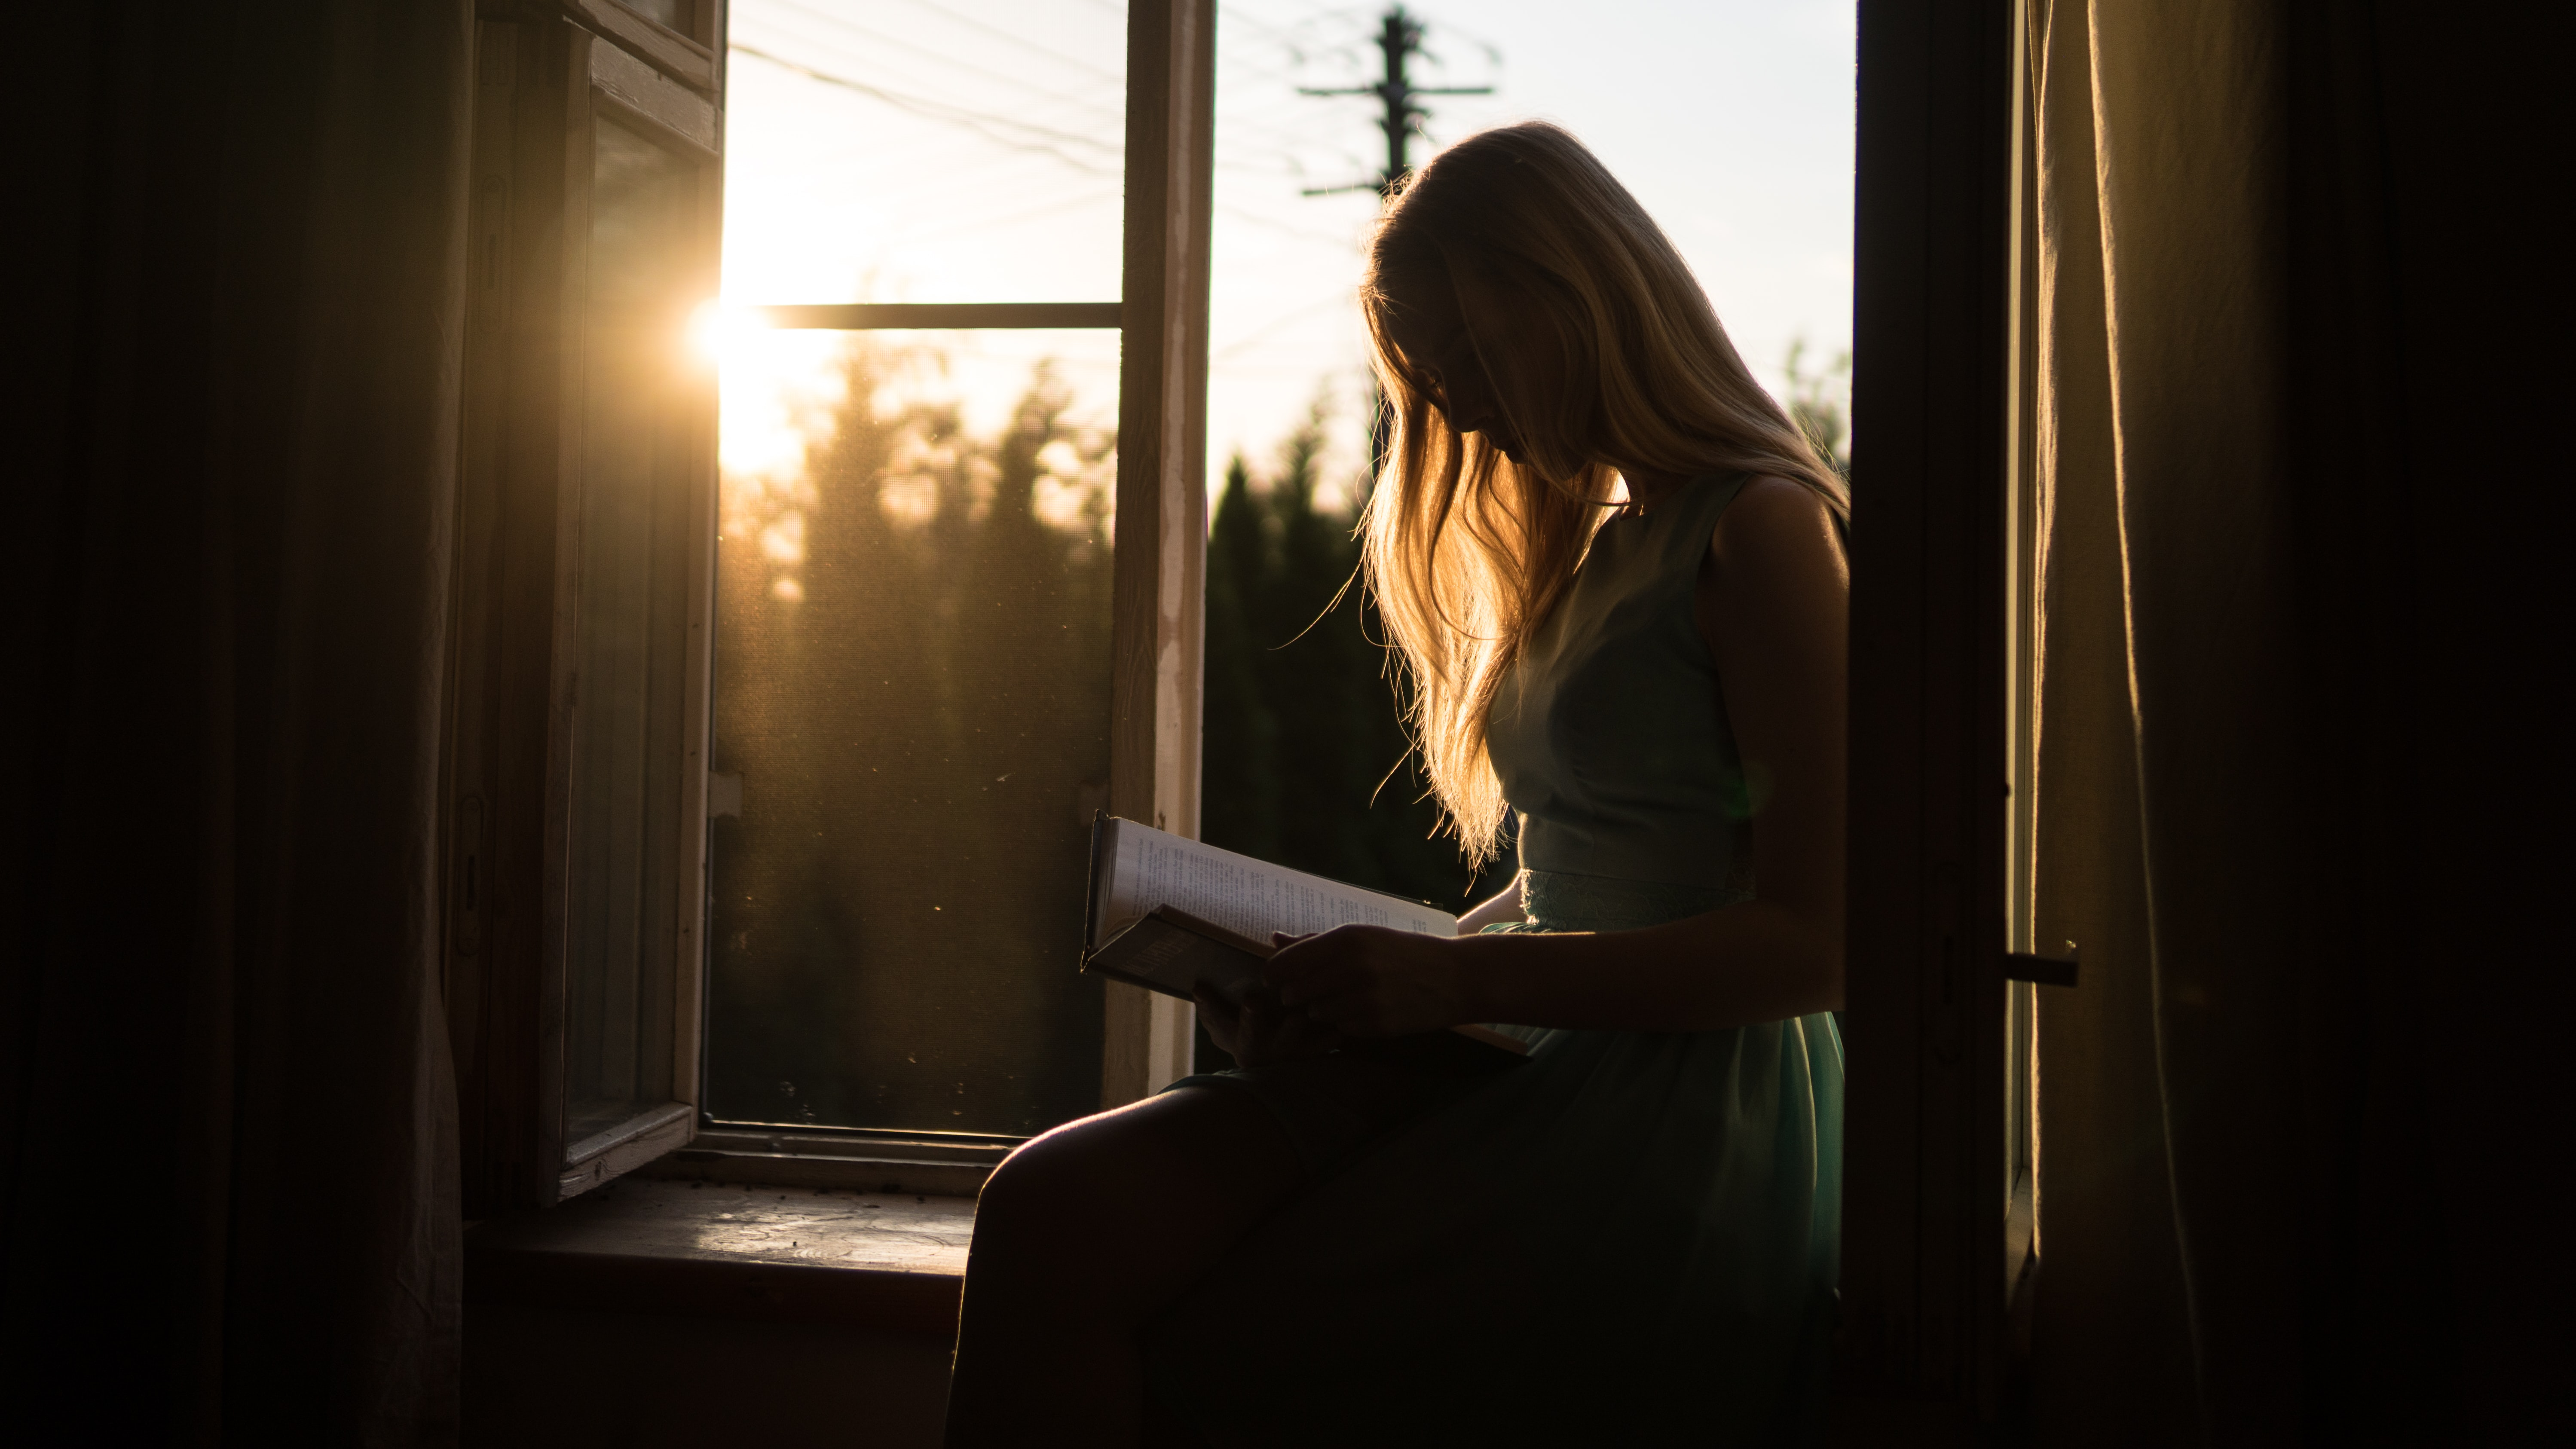 woman reading book while sitting at window